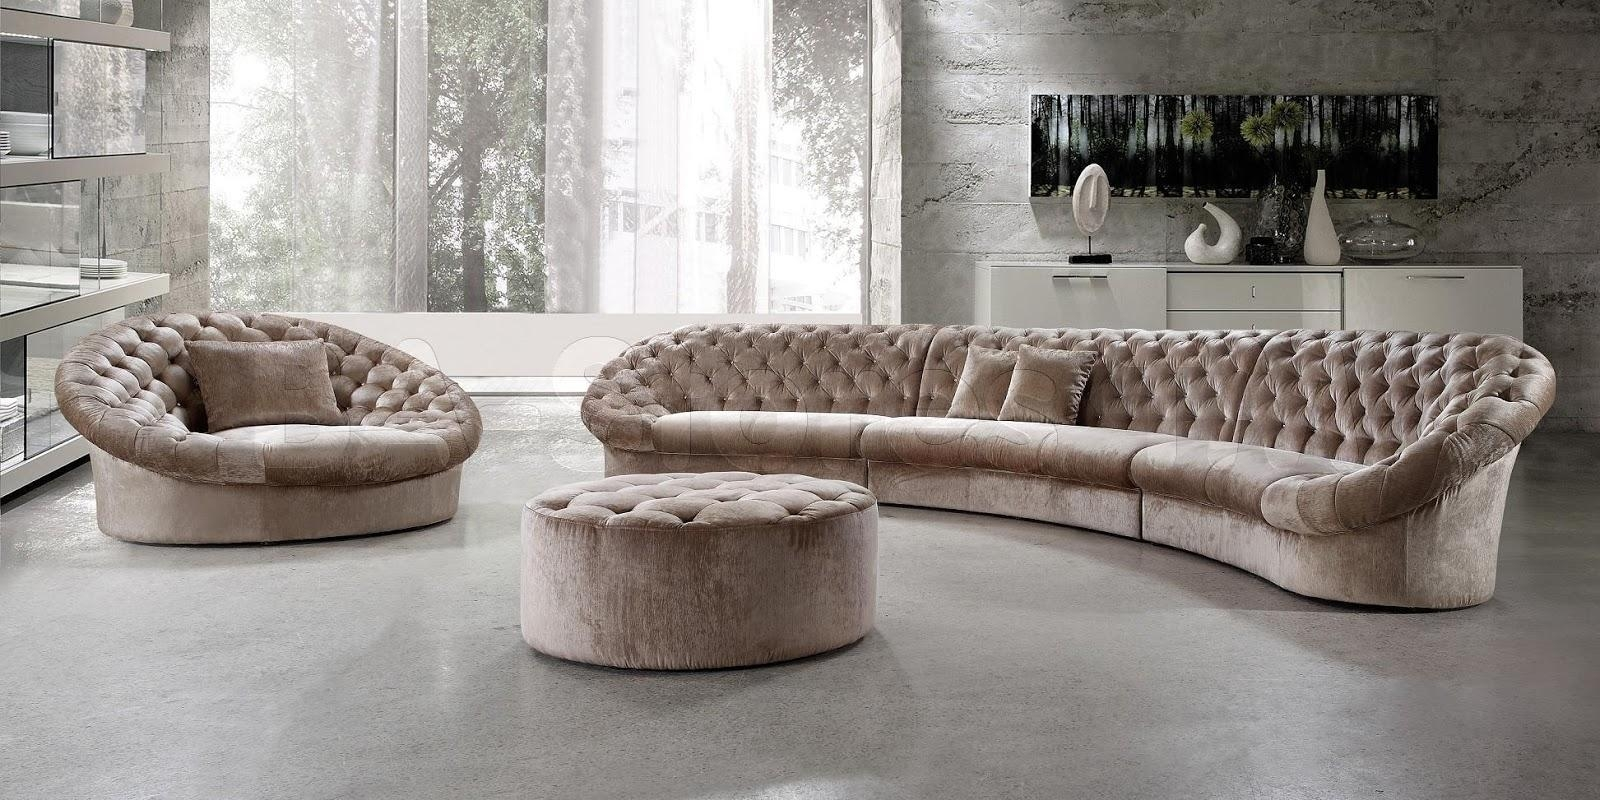 Semi Circular Sectional Sofa With Design Photo 31118 | Kengire With Semi Circular Sectional Sofas (Image 13 of 20)